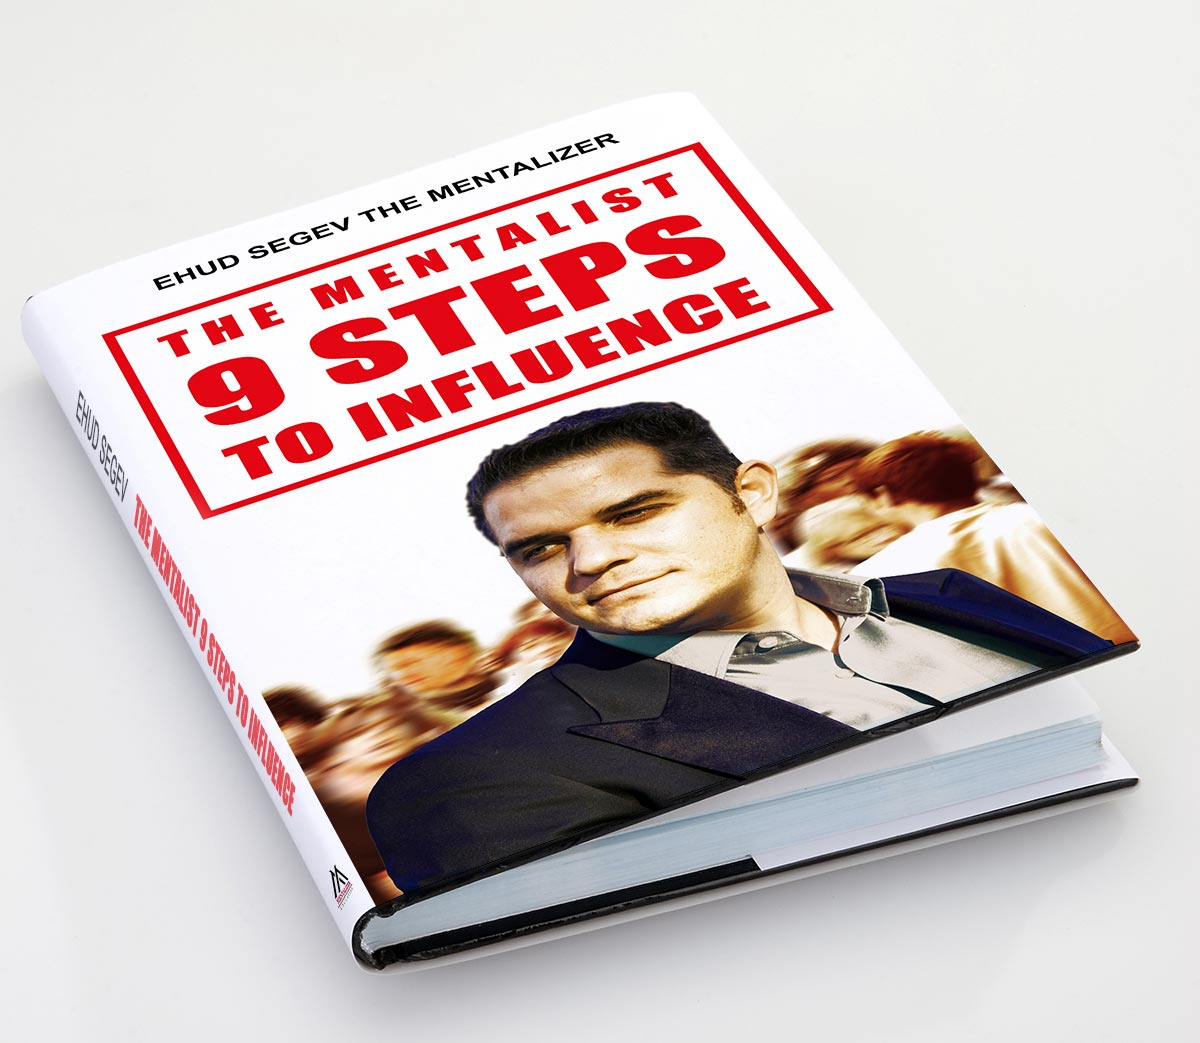 Ehud Segev's critically acclaimed book that reveals his easy steps to influencing and inspiring others